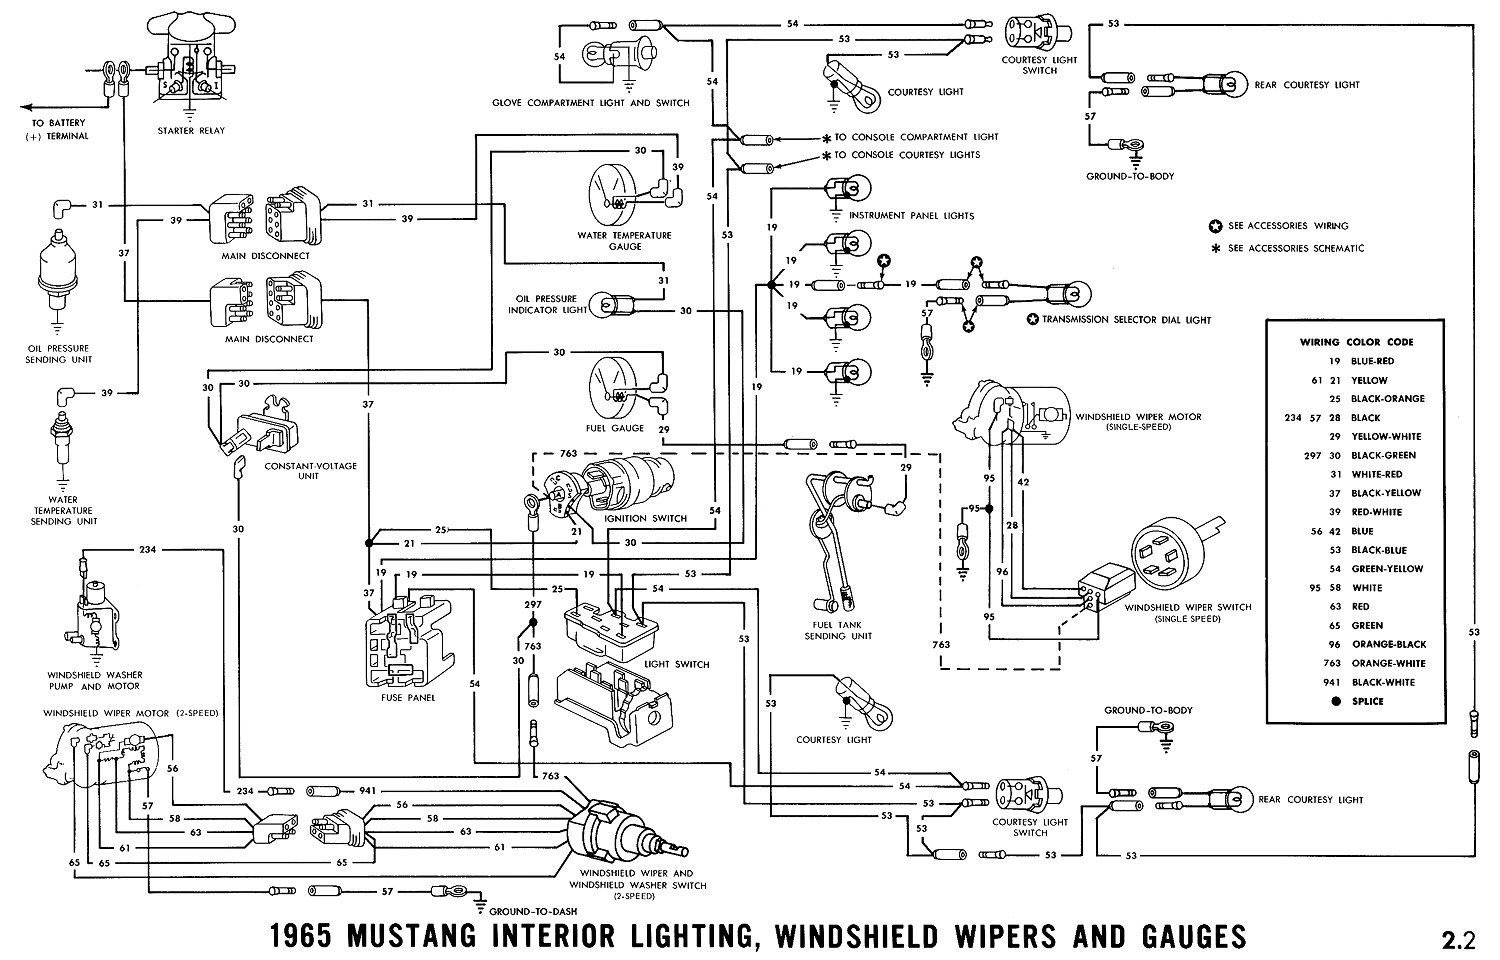 1965g 1968 mustang wiring diagram manual 1968 mustang repair manual 1969 ford mustang ignition wiring diagram at n-0.co